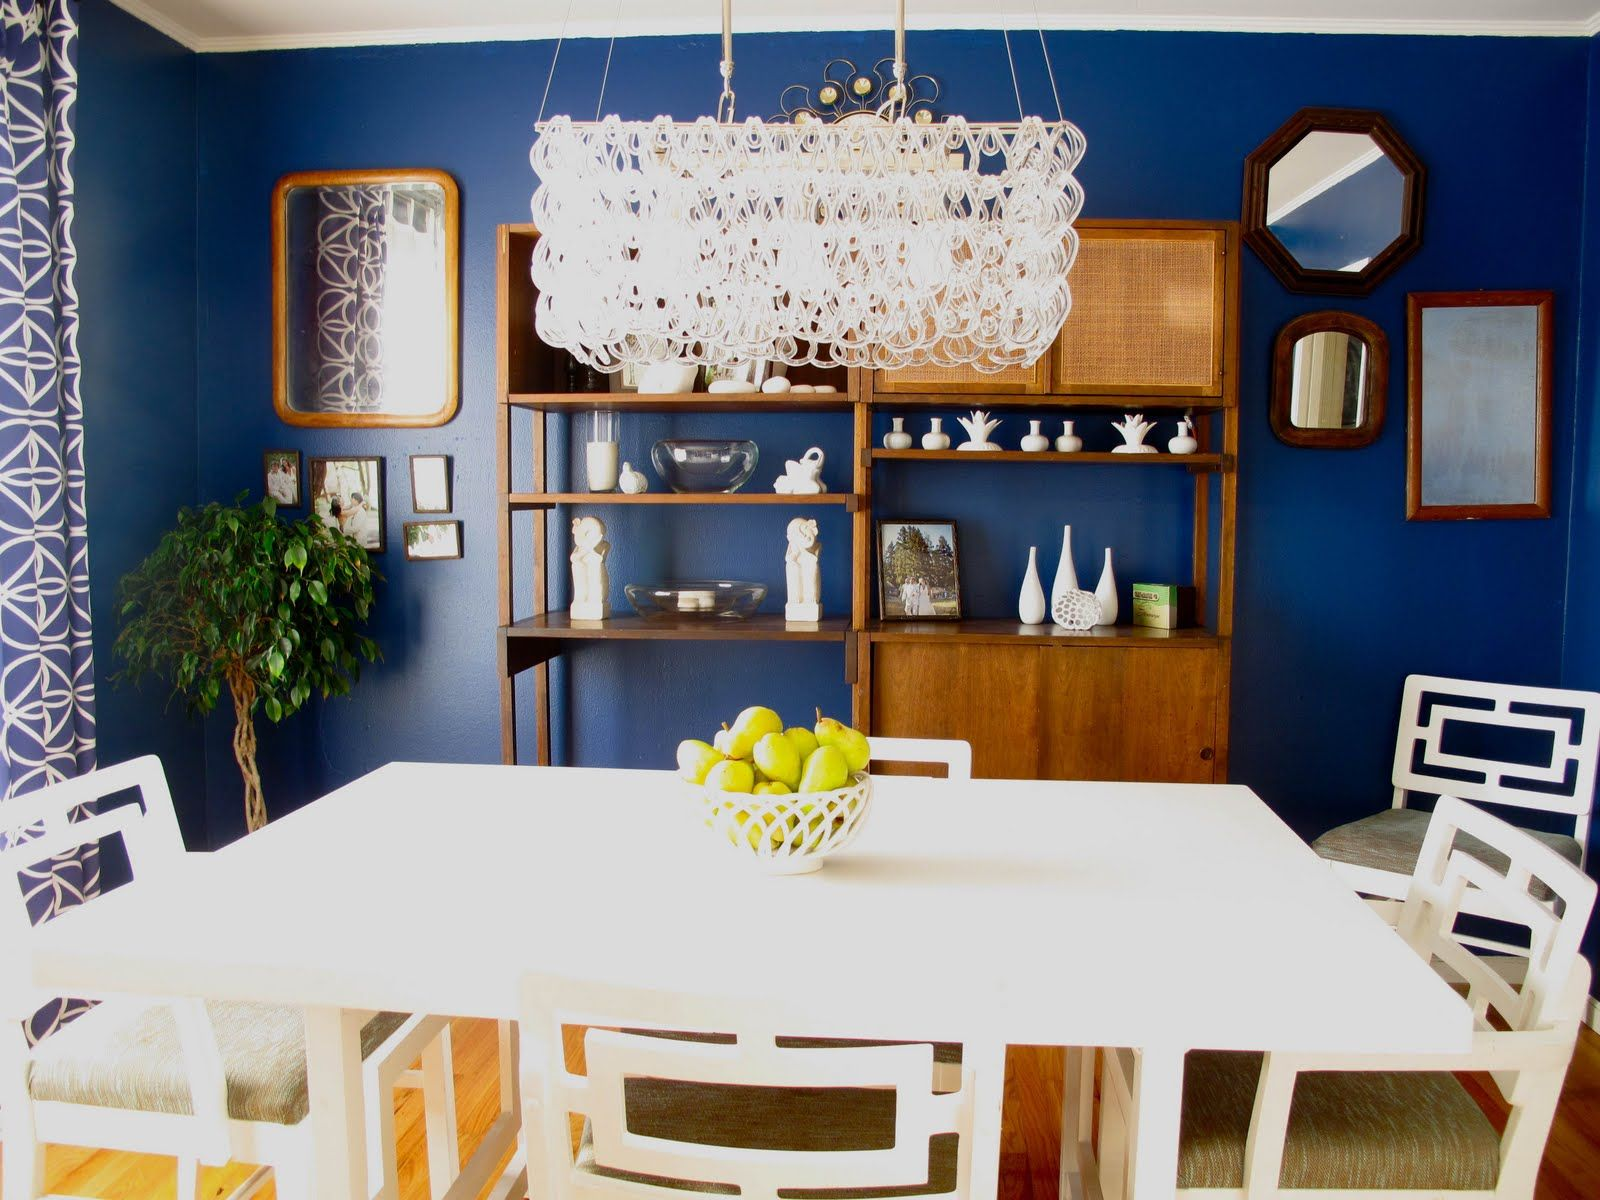 Two Bedrooms and a Baby Navy Blue